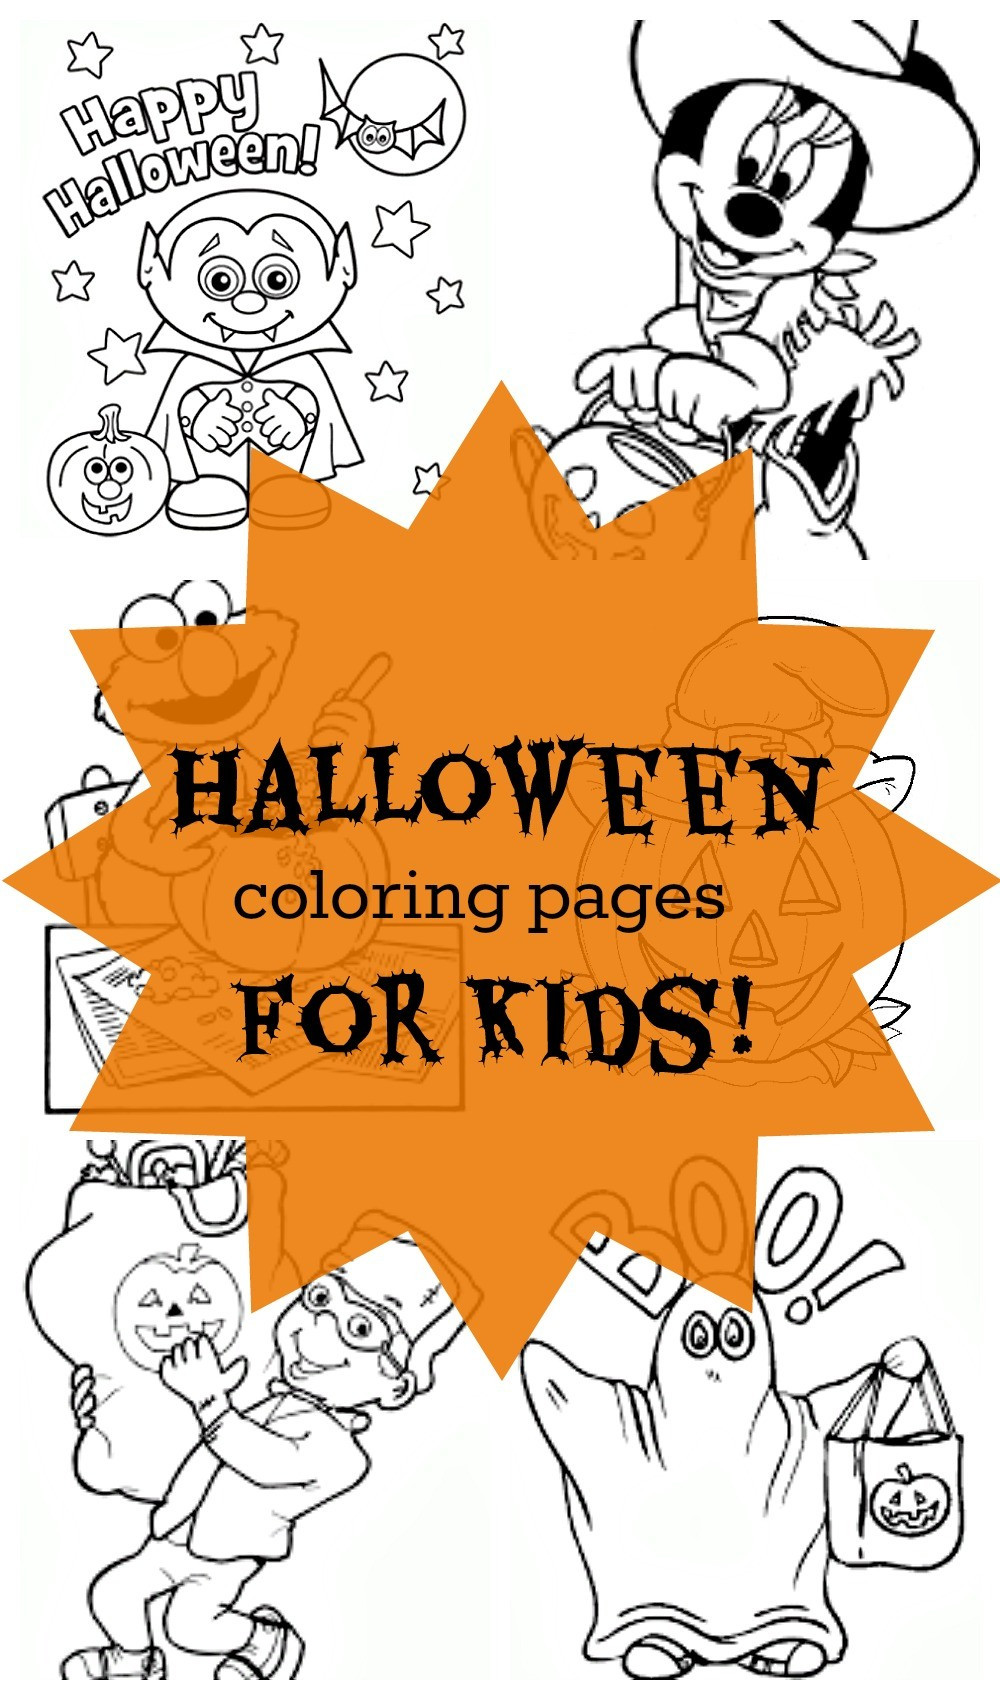 Printable Halloween Coloring Pages For Kids  24 Free Printable Halloween Coloring Pages for Kids